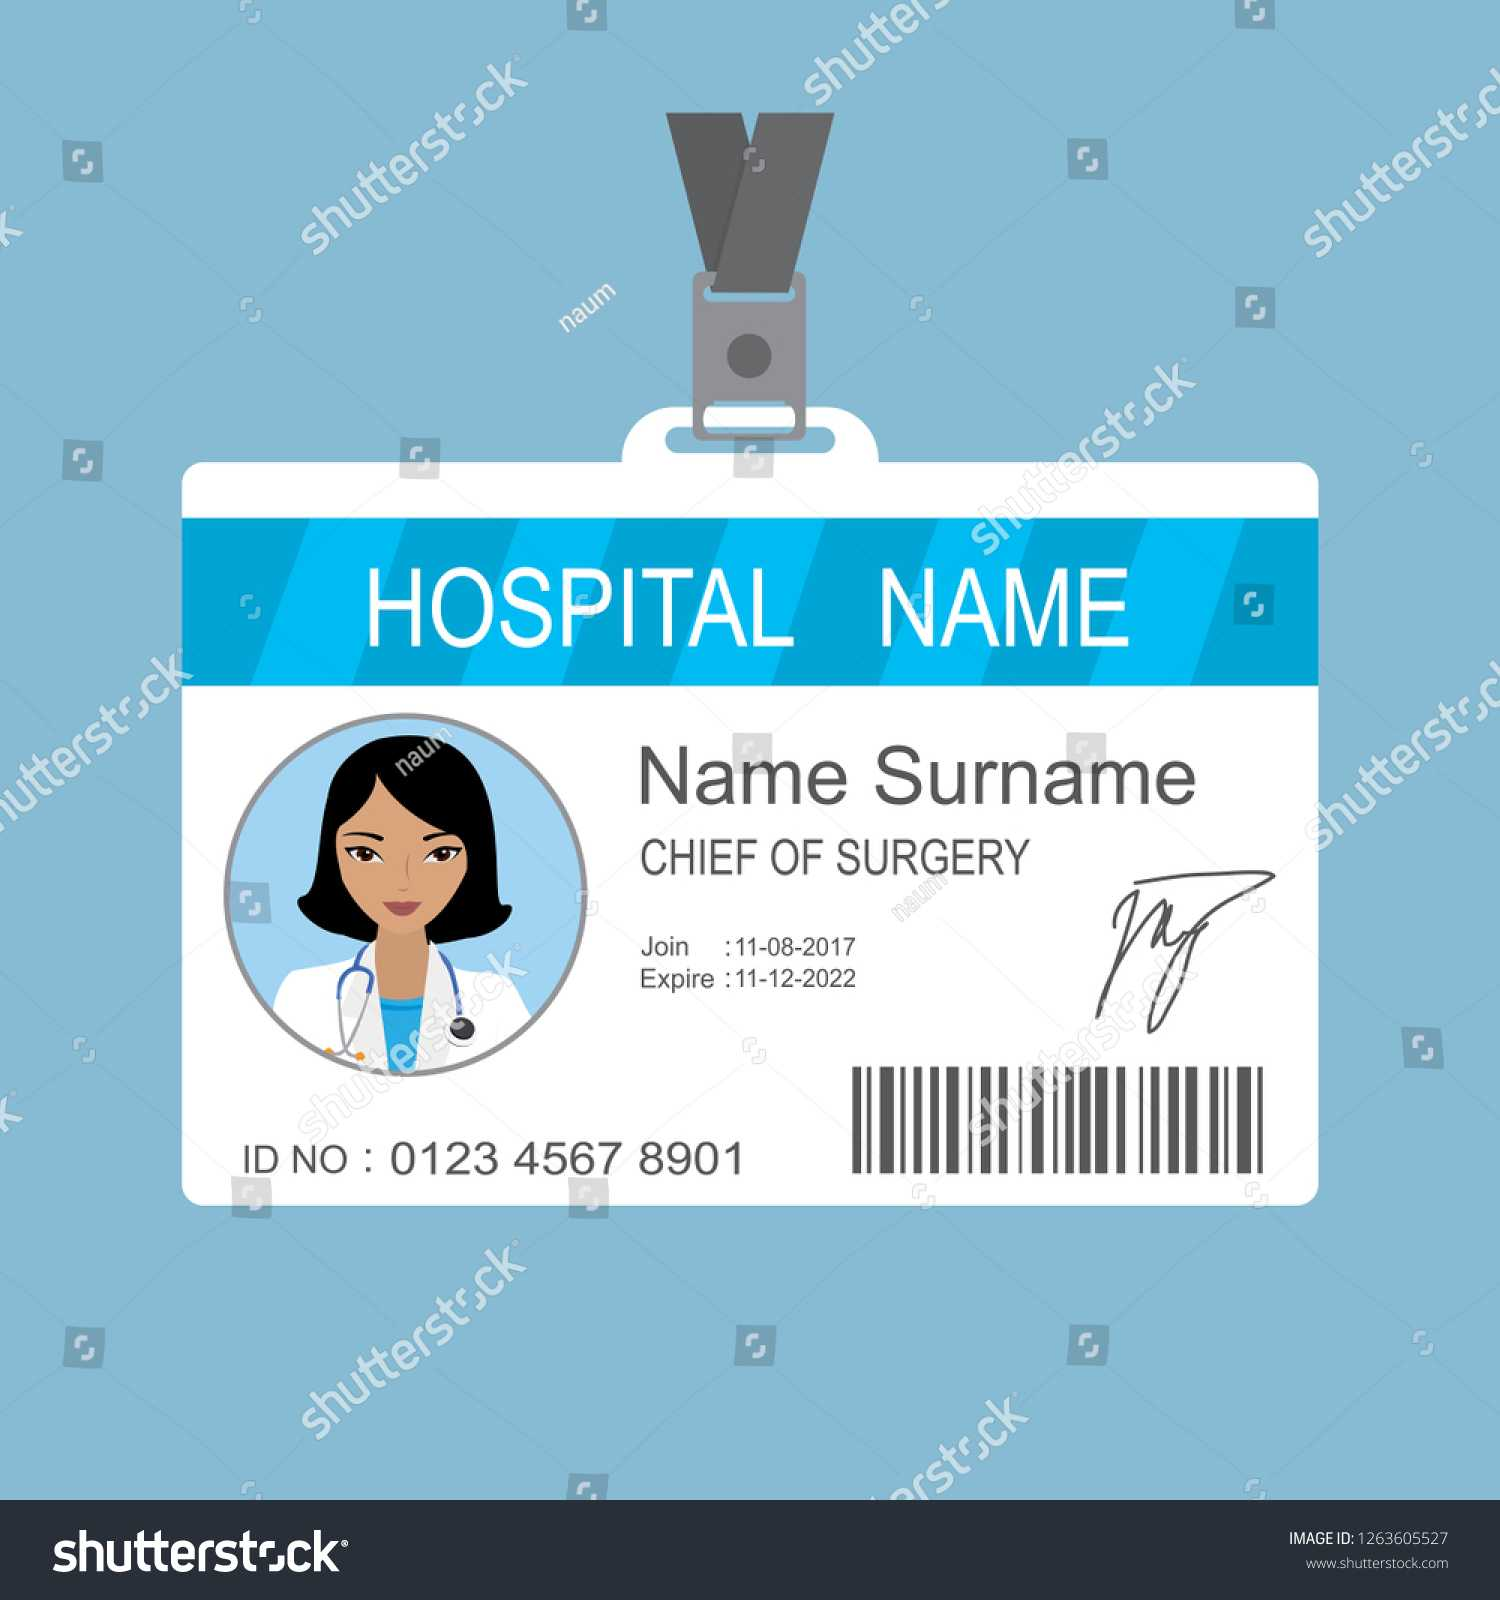 Female Asian Doctor Id Card Templatemedical Stock Vector Within Hospital Id Card Template